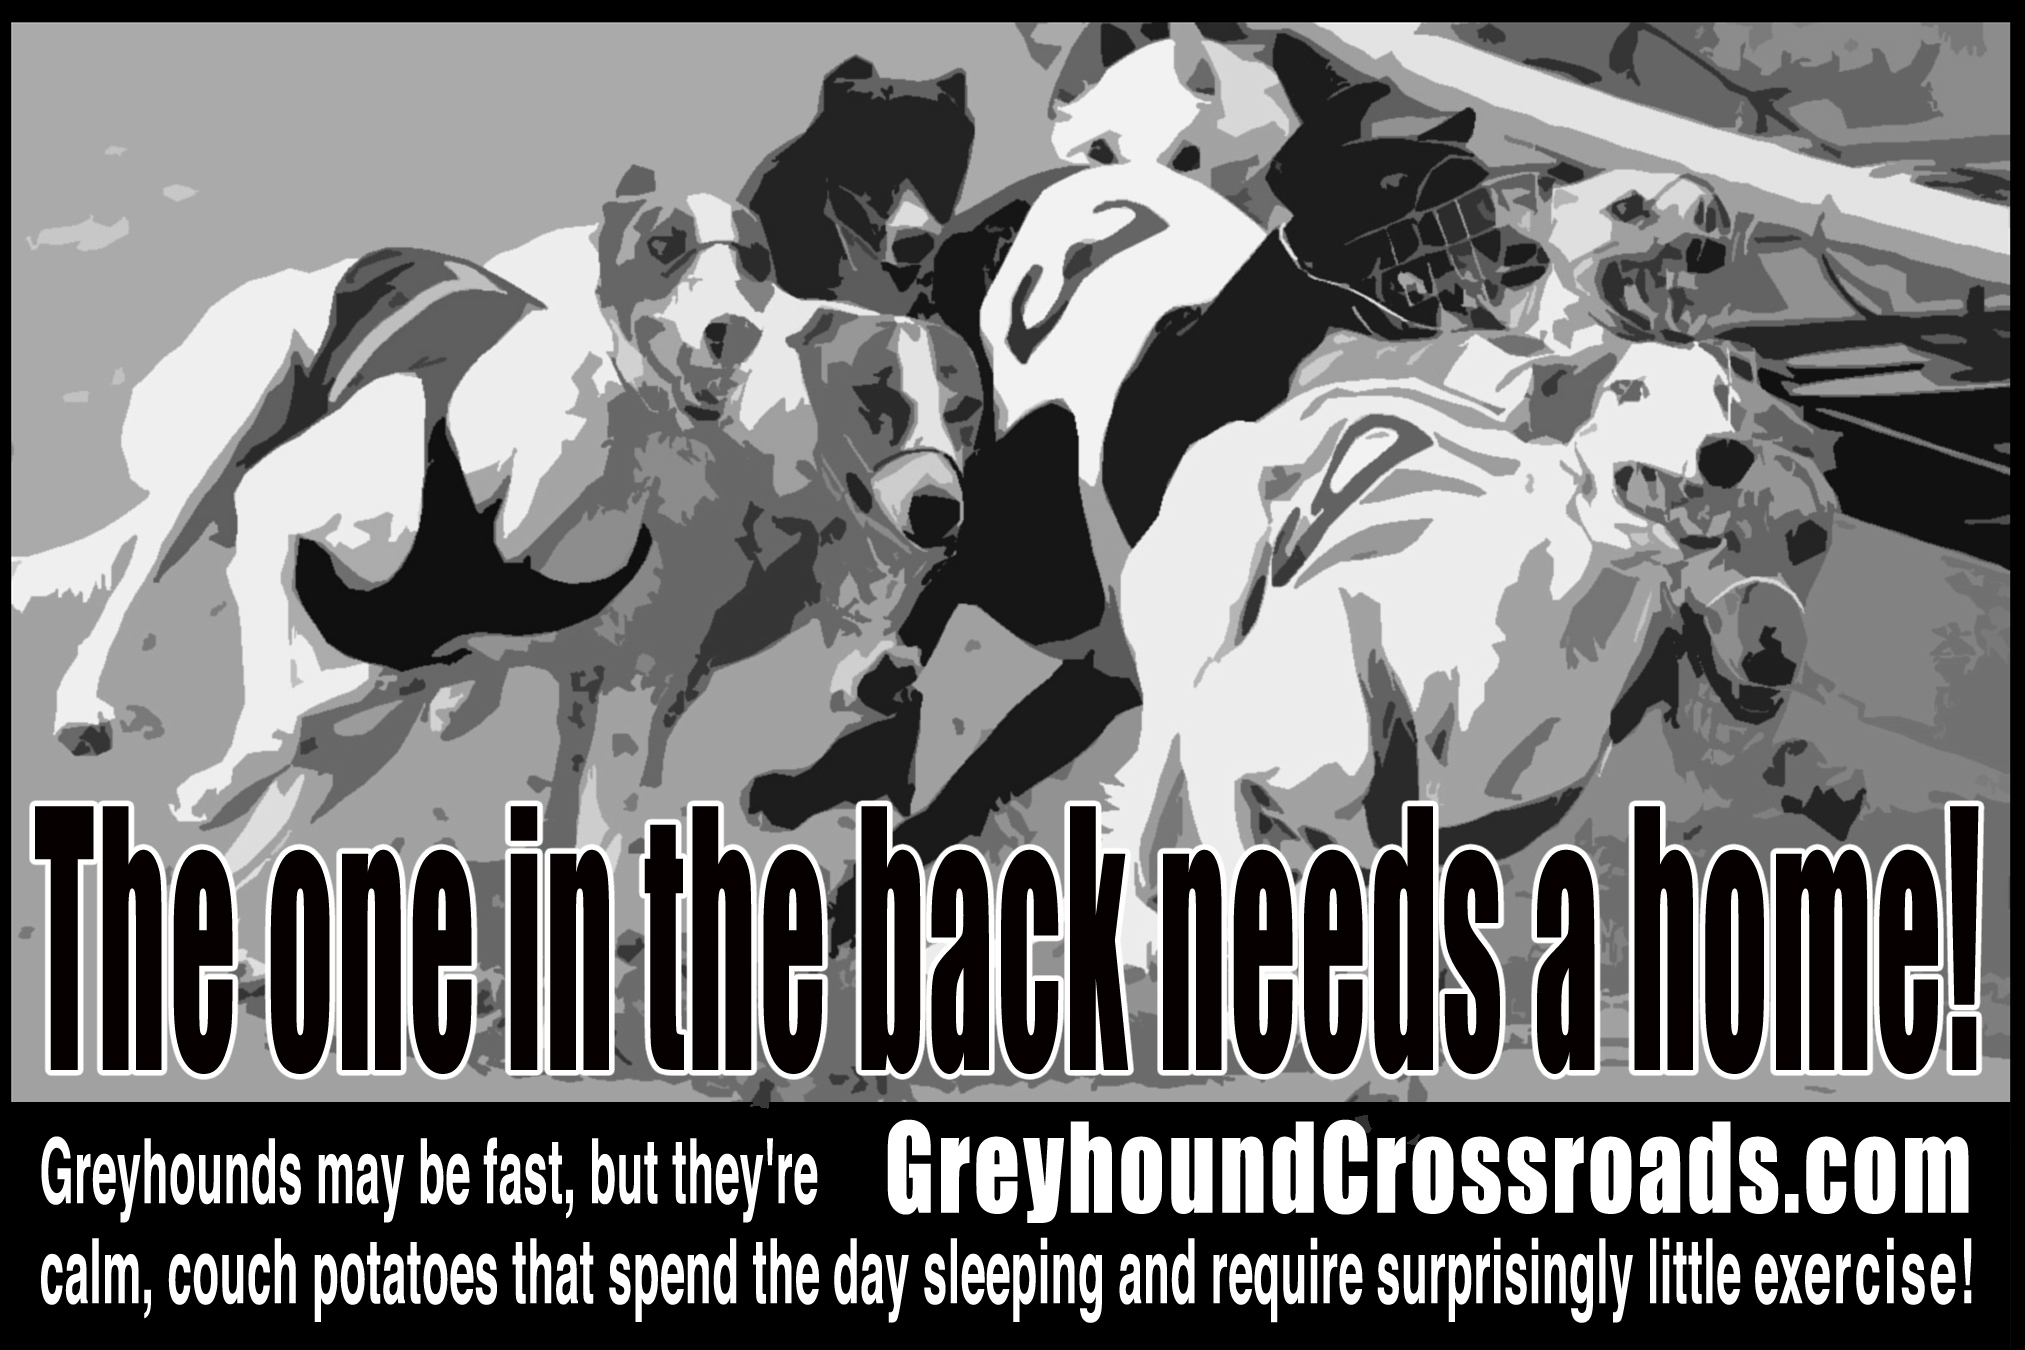 de0eb3cb17 This page is intended to give you a serious look at the steps to adopting a  greyhound. As much as we love greyhounds